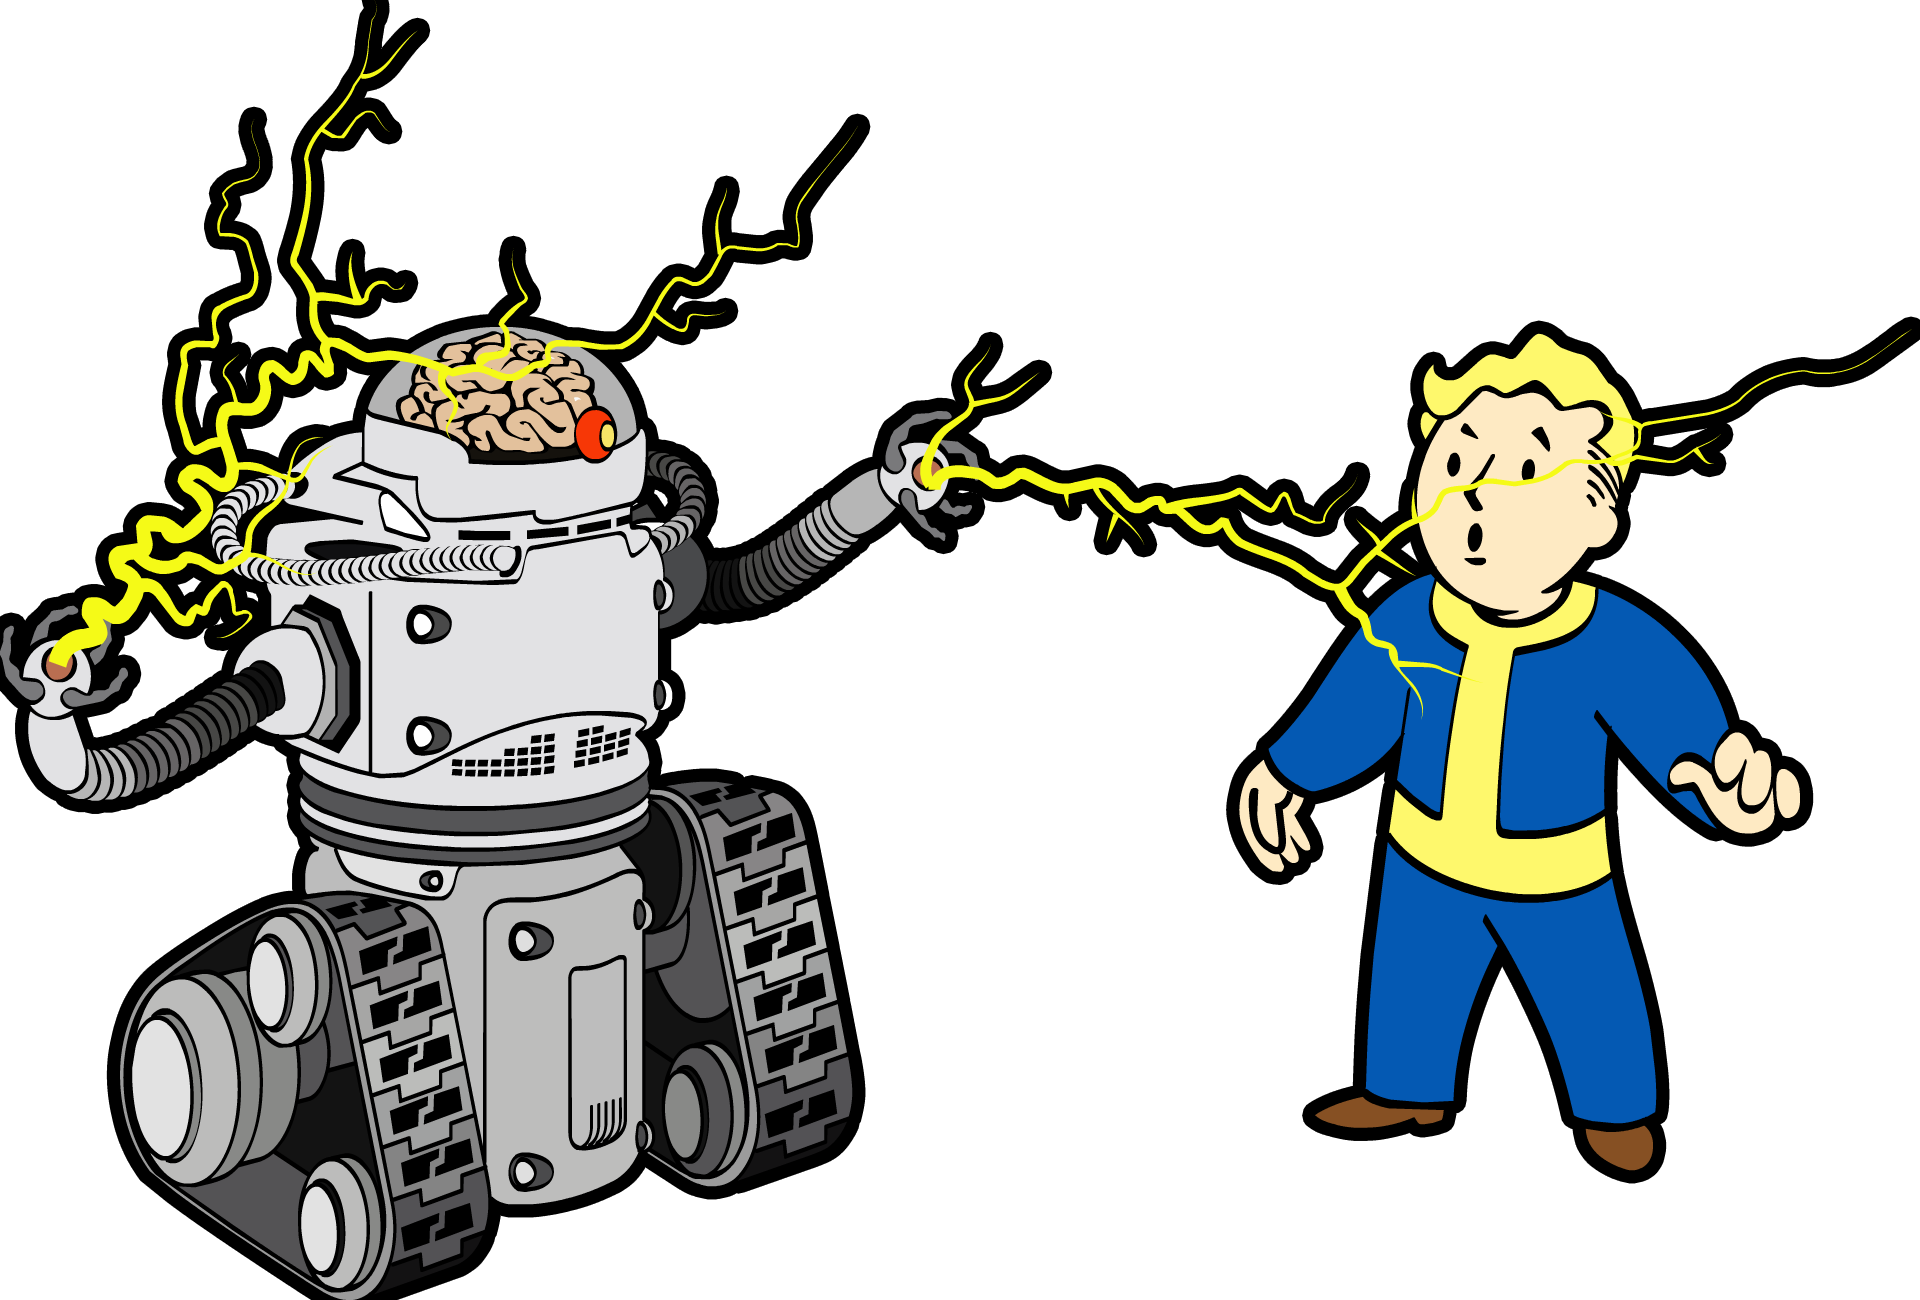 Detective clipart quest. Headhunting fallout wiki fandom